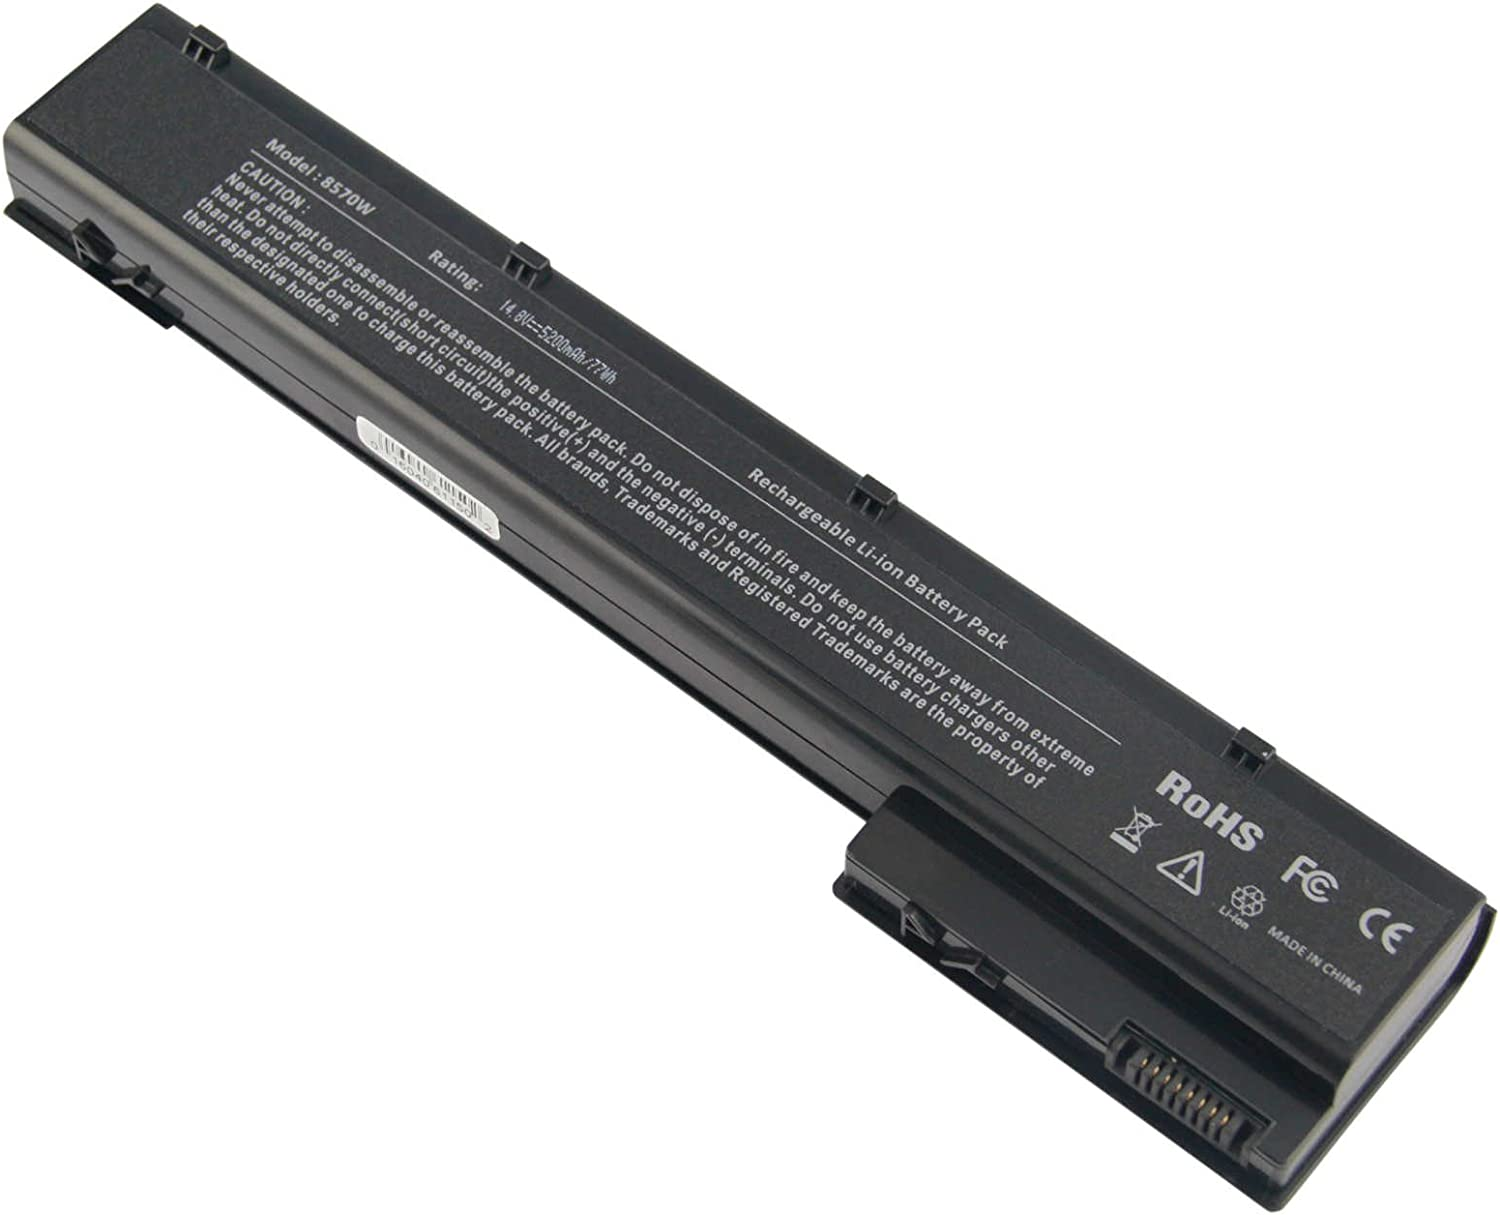 ARyee 8570w Battery Laptop for HP Elitebook 8560W 8570W 8760W 8770W, fit 632113-151 632425-001 632427-001 HSTNN-IB2P HSTNN-LB2P HSTNN-LB2Q HSTNN-F10C HSTNN-I93C VH08